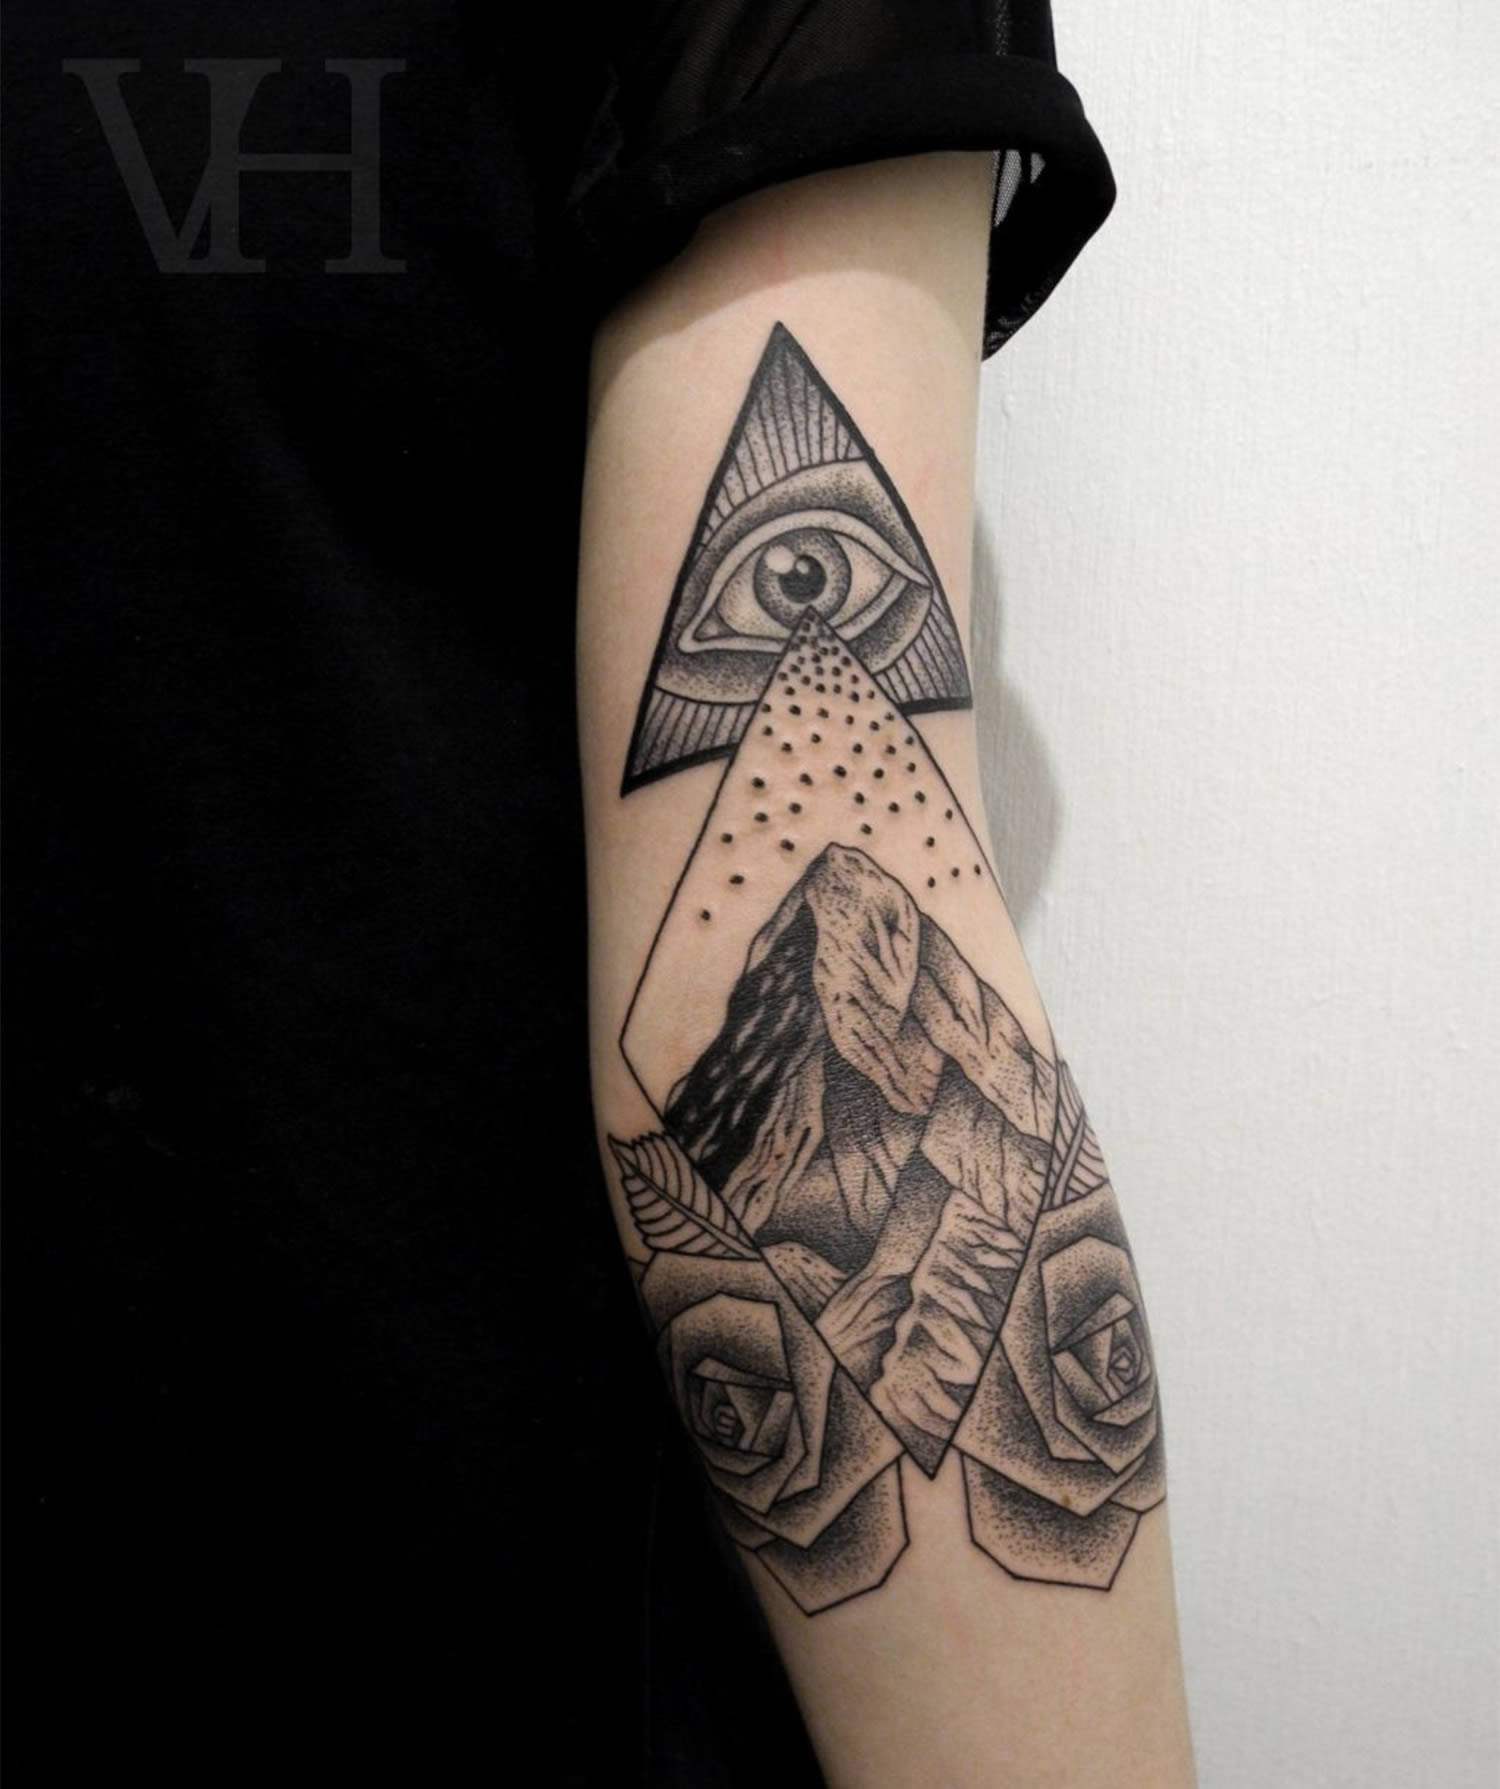 Illuminati Tattoos Meaning